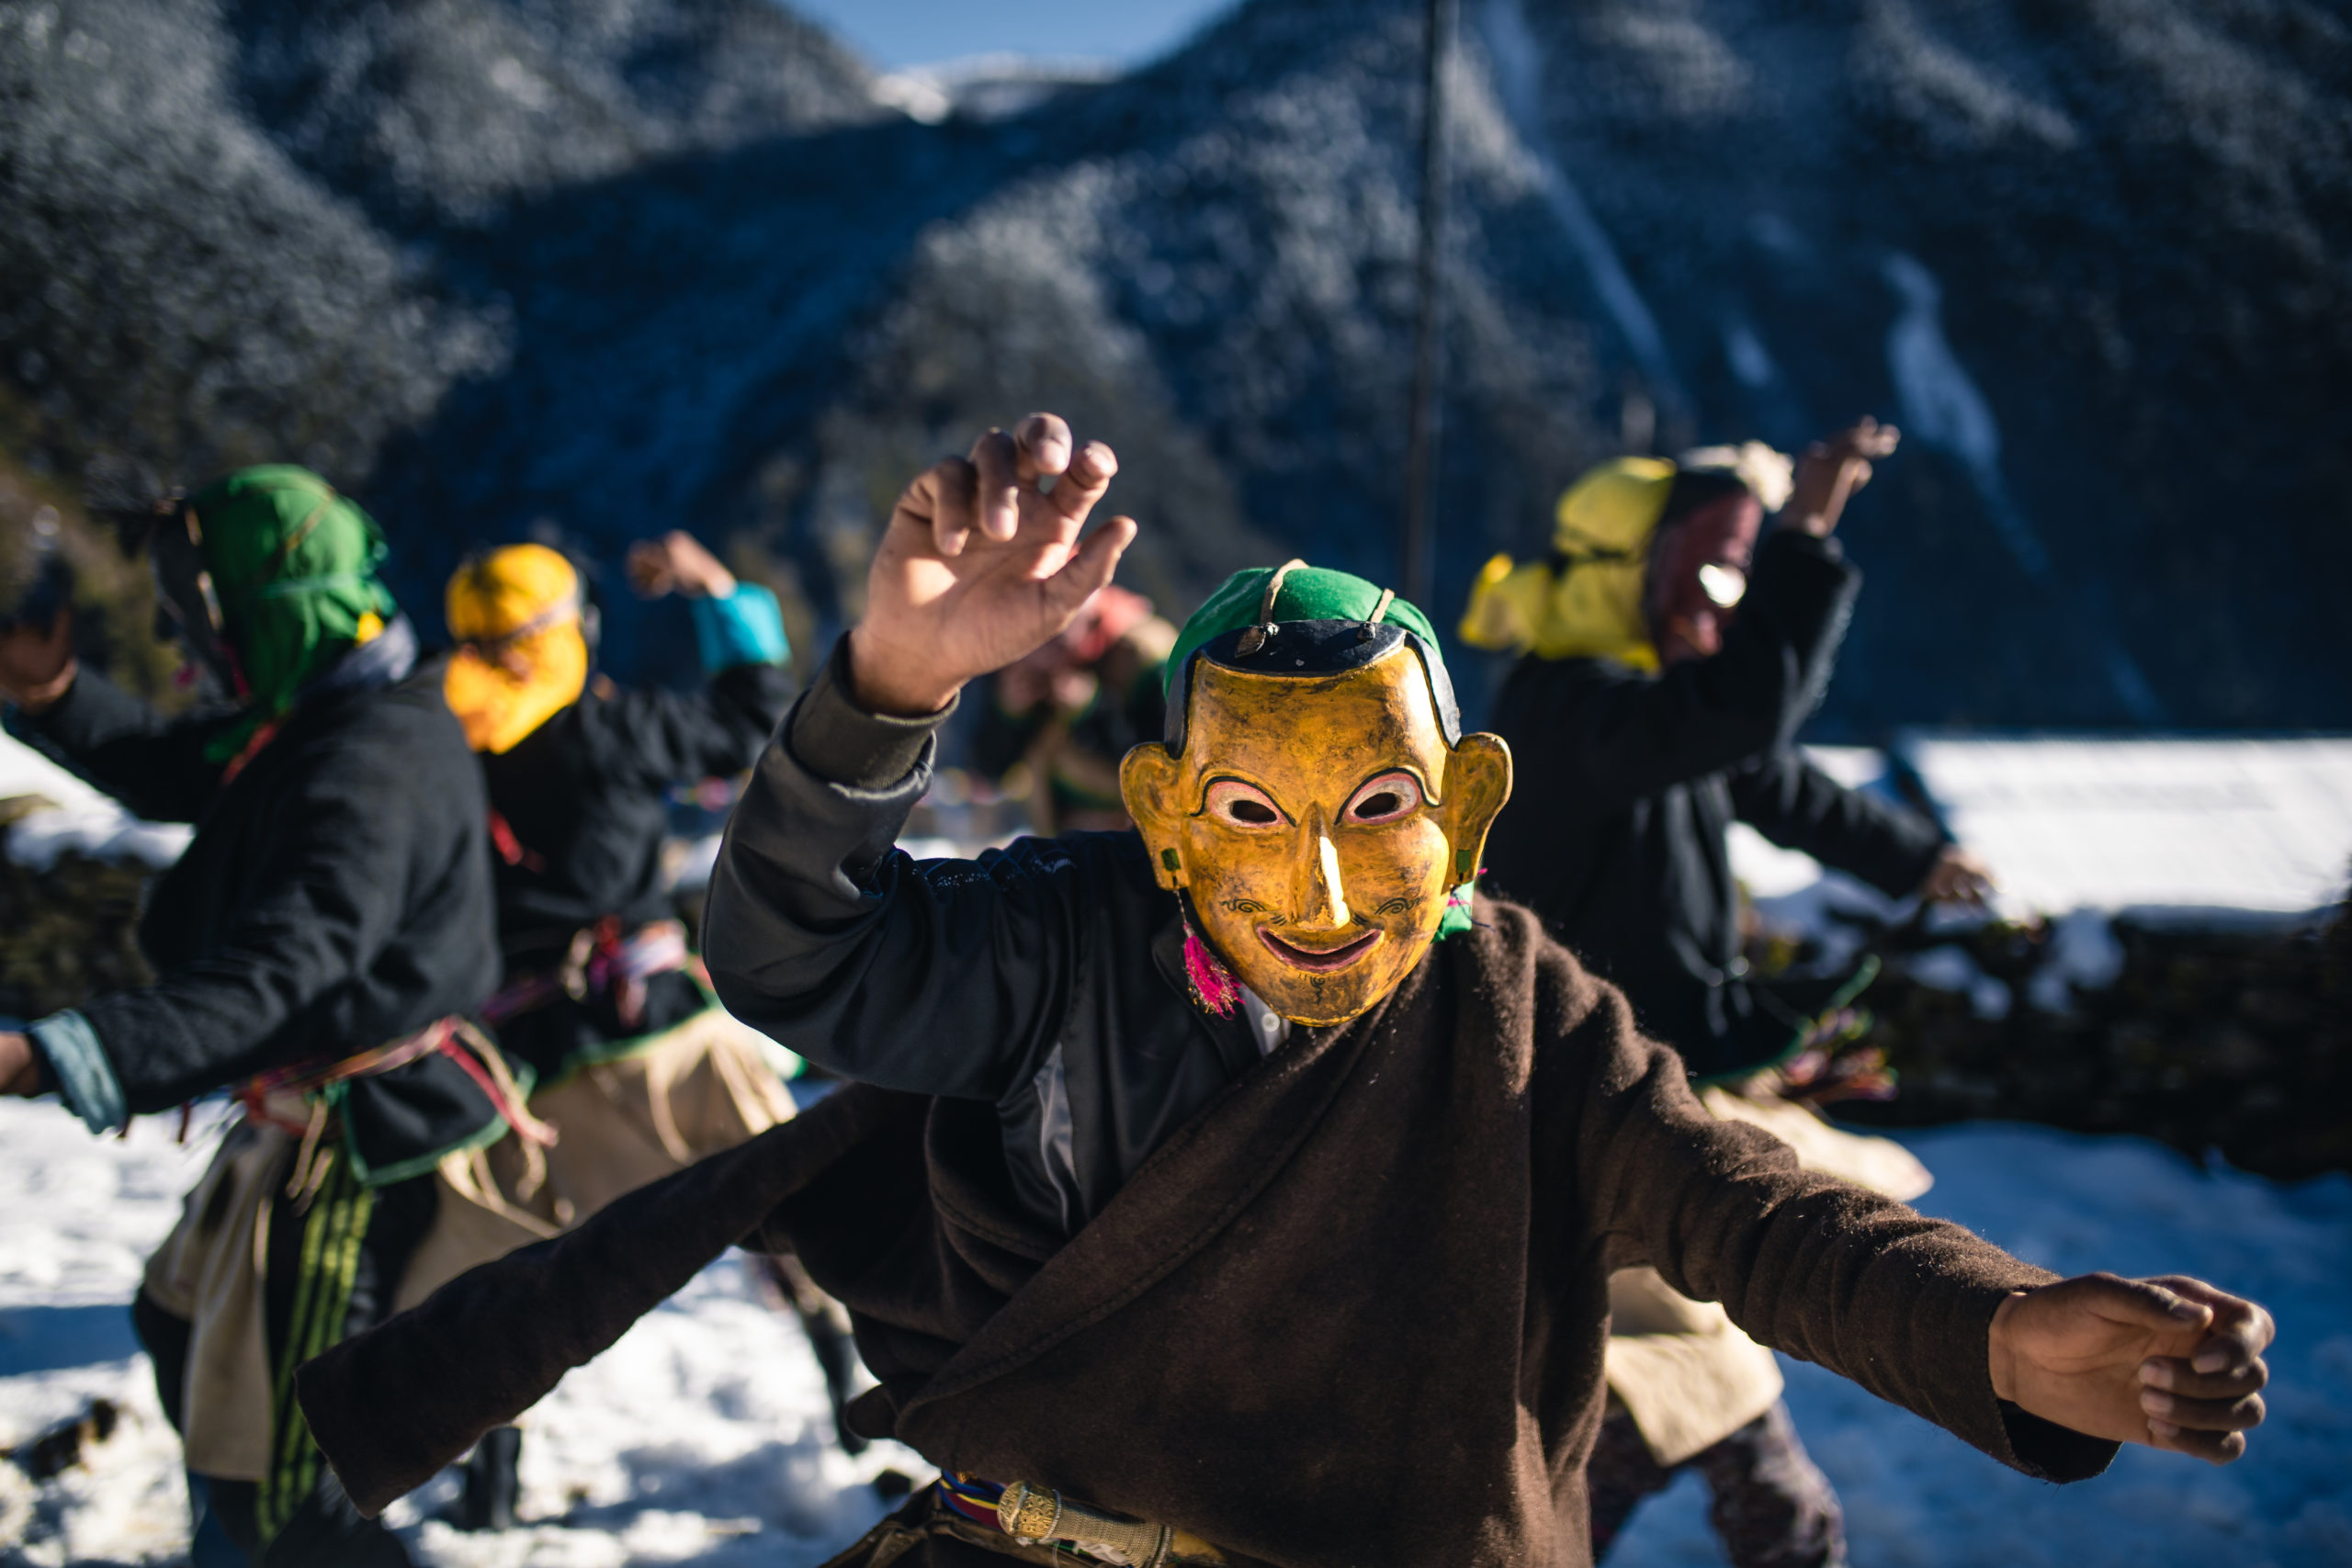 Photography of Bhutan's Traditional Masked Dancers dancing in Merak.